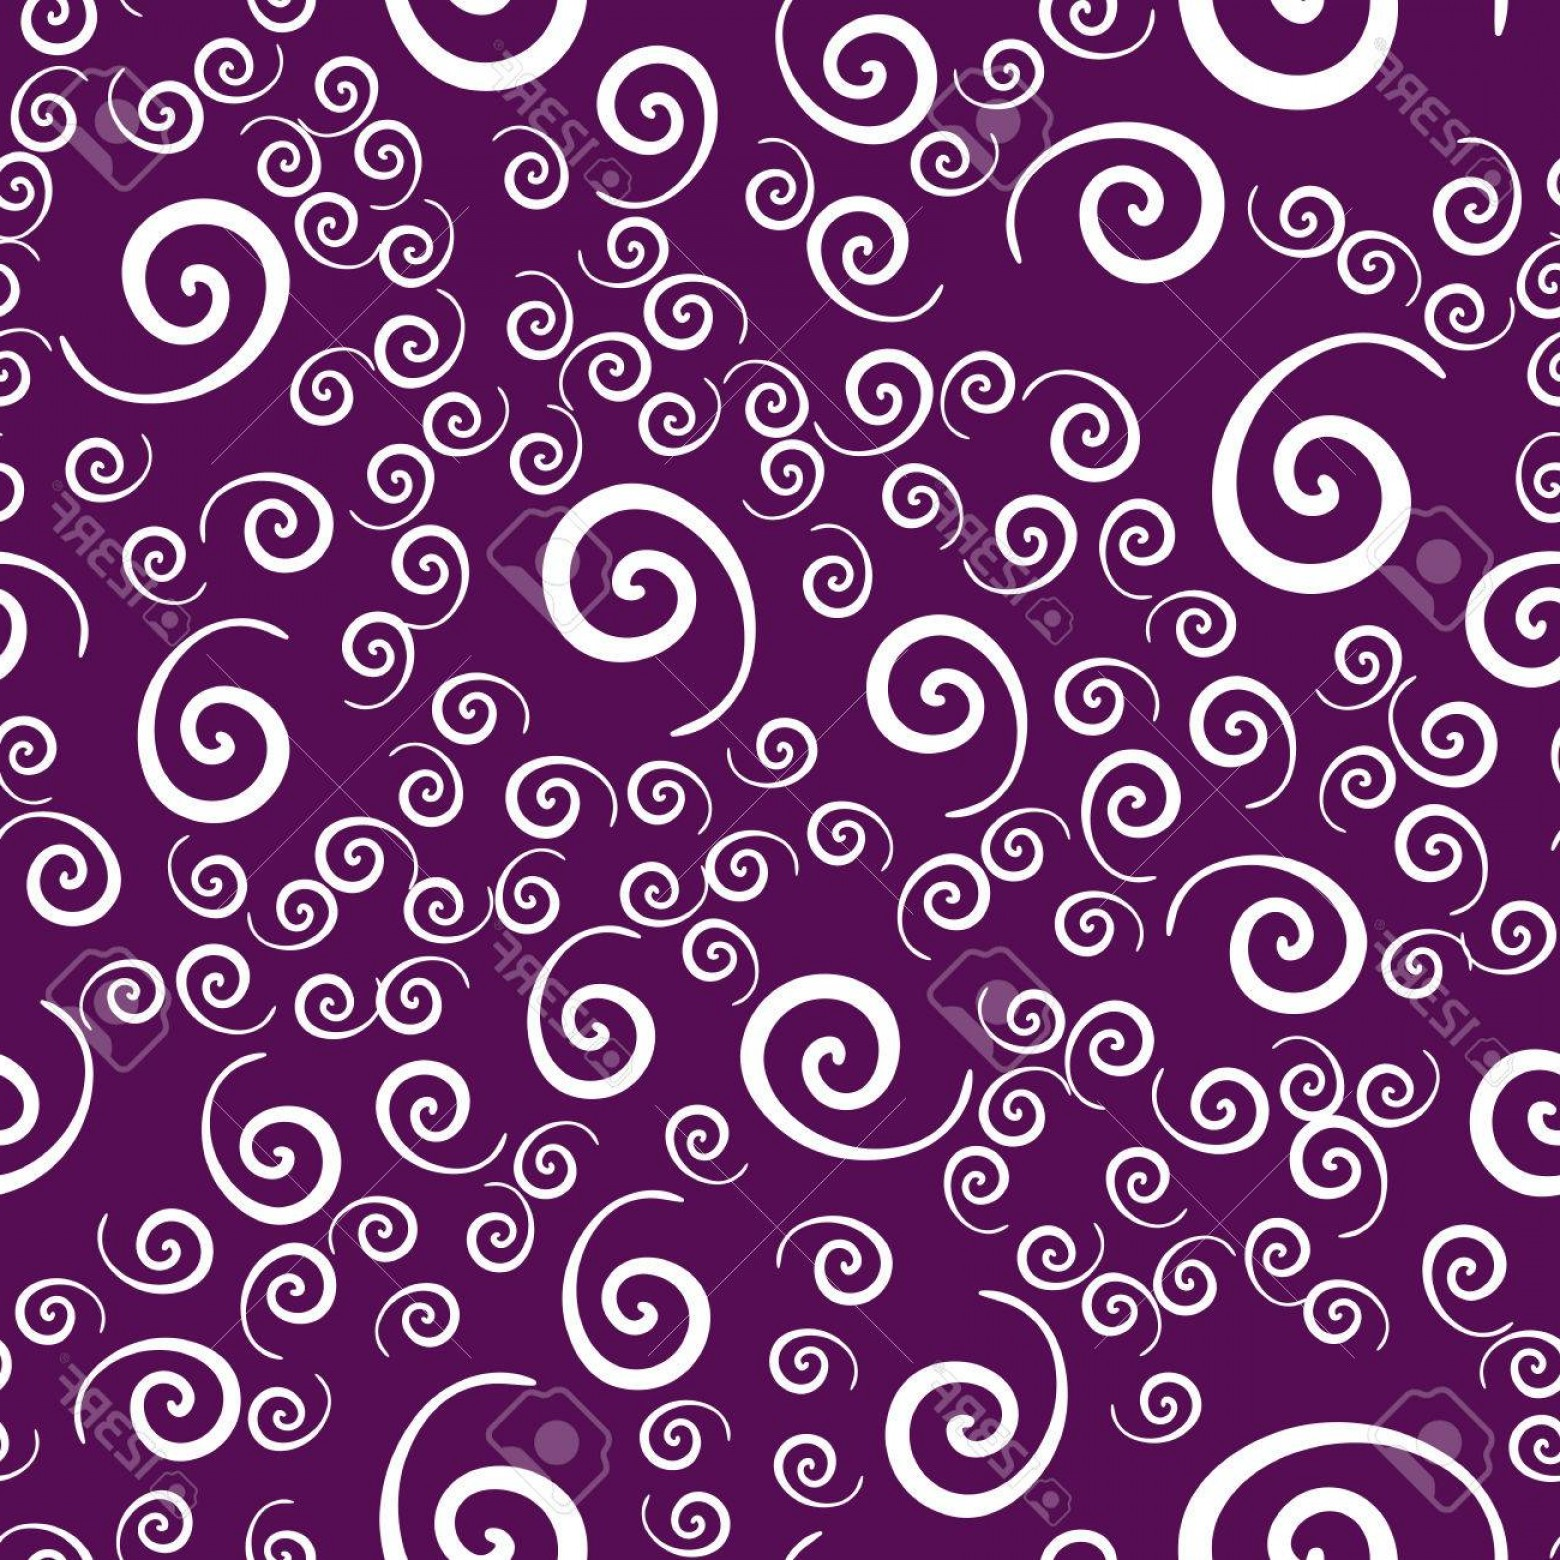 Violet Swirl Design Vector: Photostock Vector Seamless All Over Vintage Childish Swirls Pattern In Violet Color